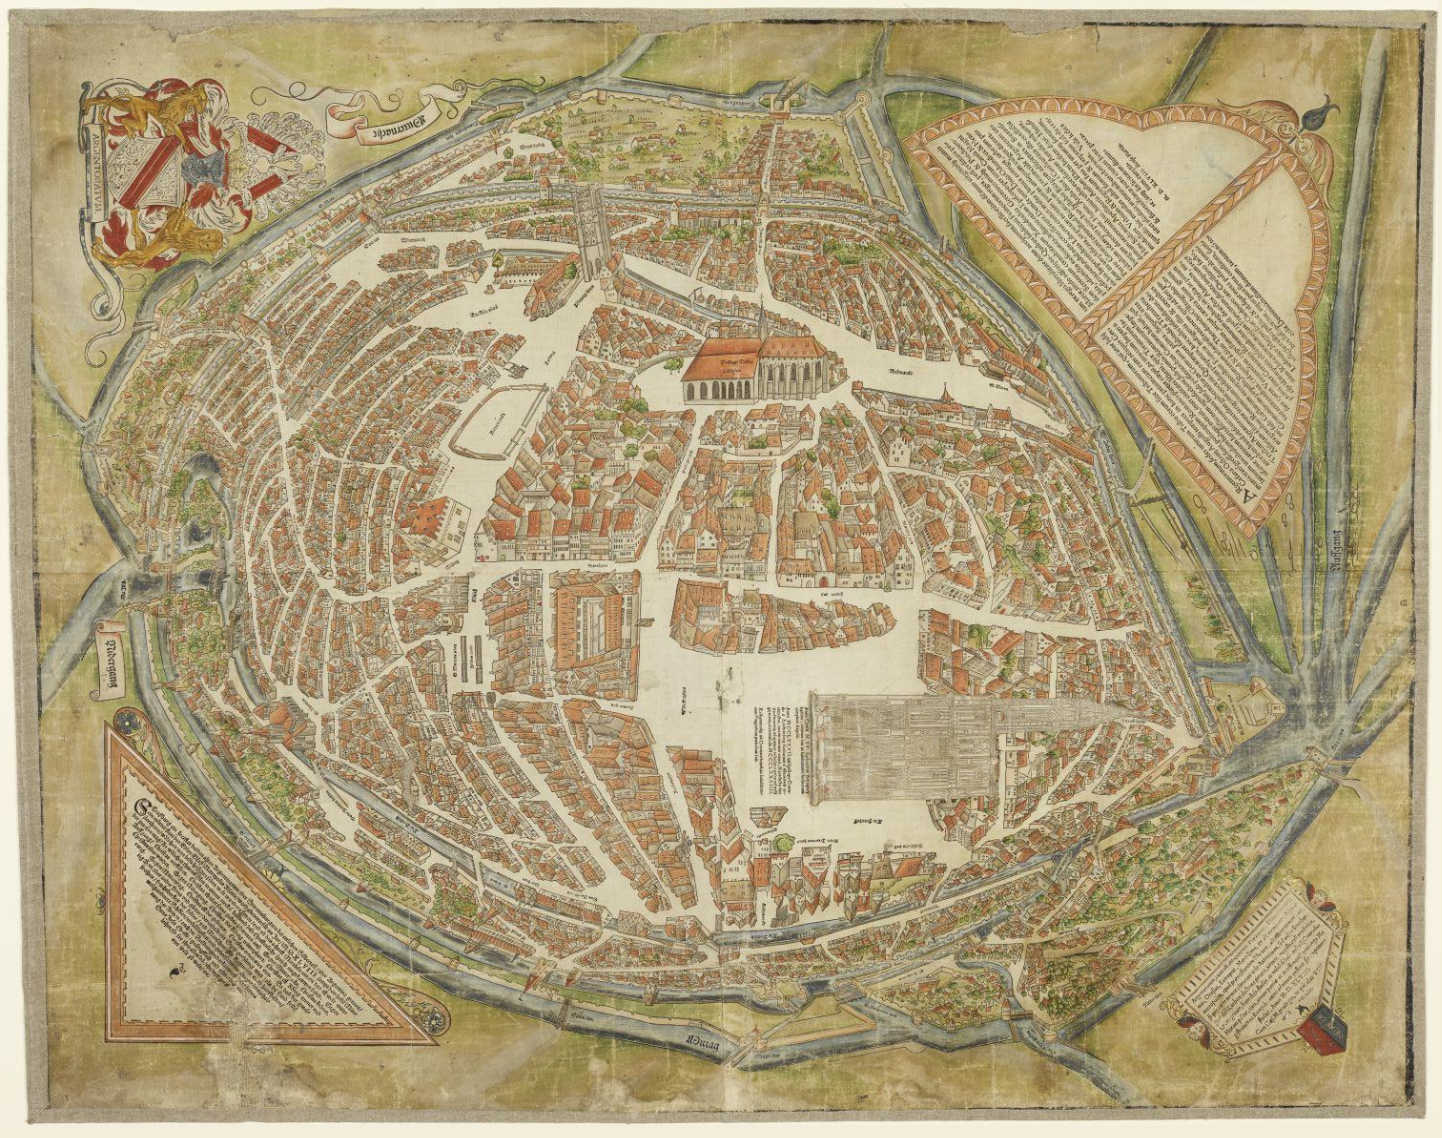 https://www.reddit.com/r/MapPorn/comments/d2q5pz/a_1548_map_of_strasbourg_with_a_fisheye_effect_by/?utm_source=share&utm_medium=ios_app&utm_name=iossmf